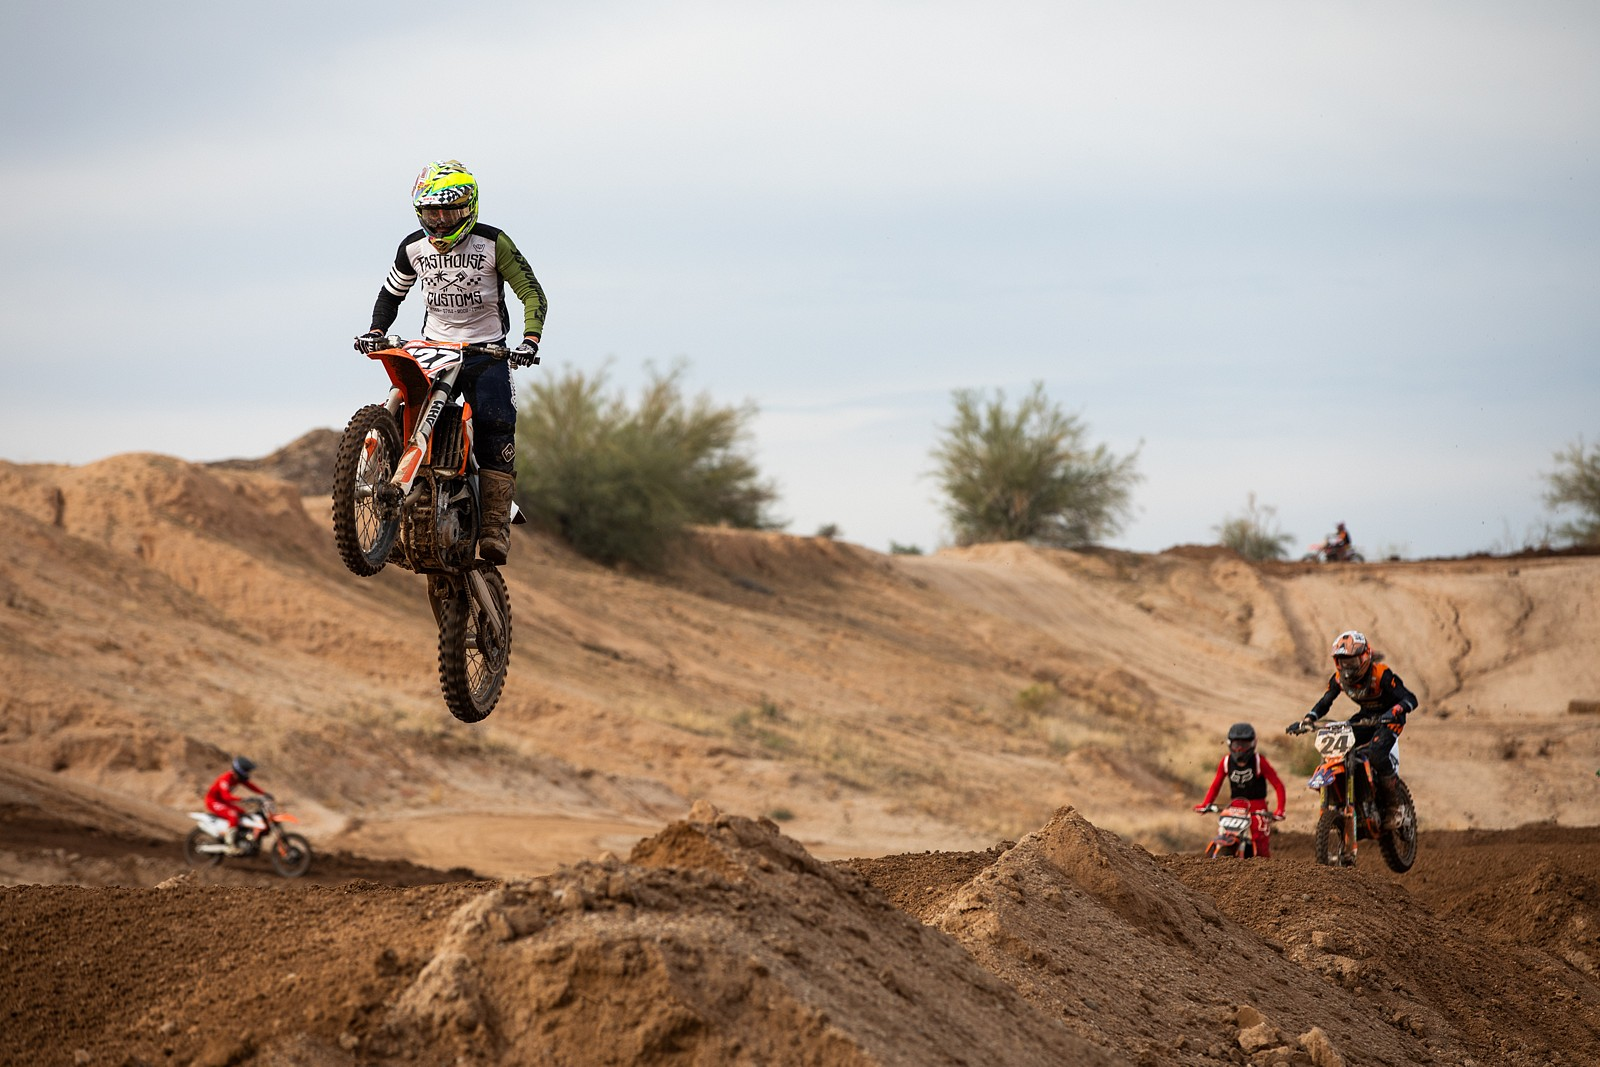 Cole Bailey - AZ Open of Motocross, Part 2 - Motocross Pictures - Vital MX